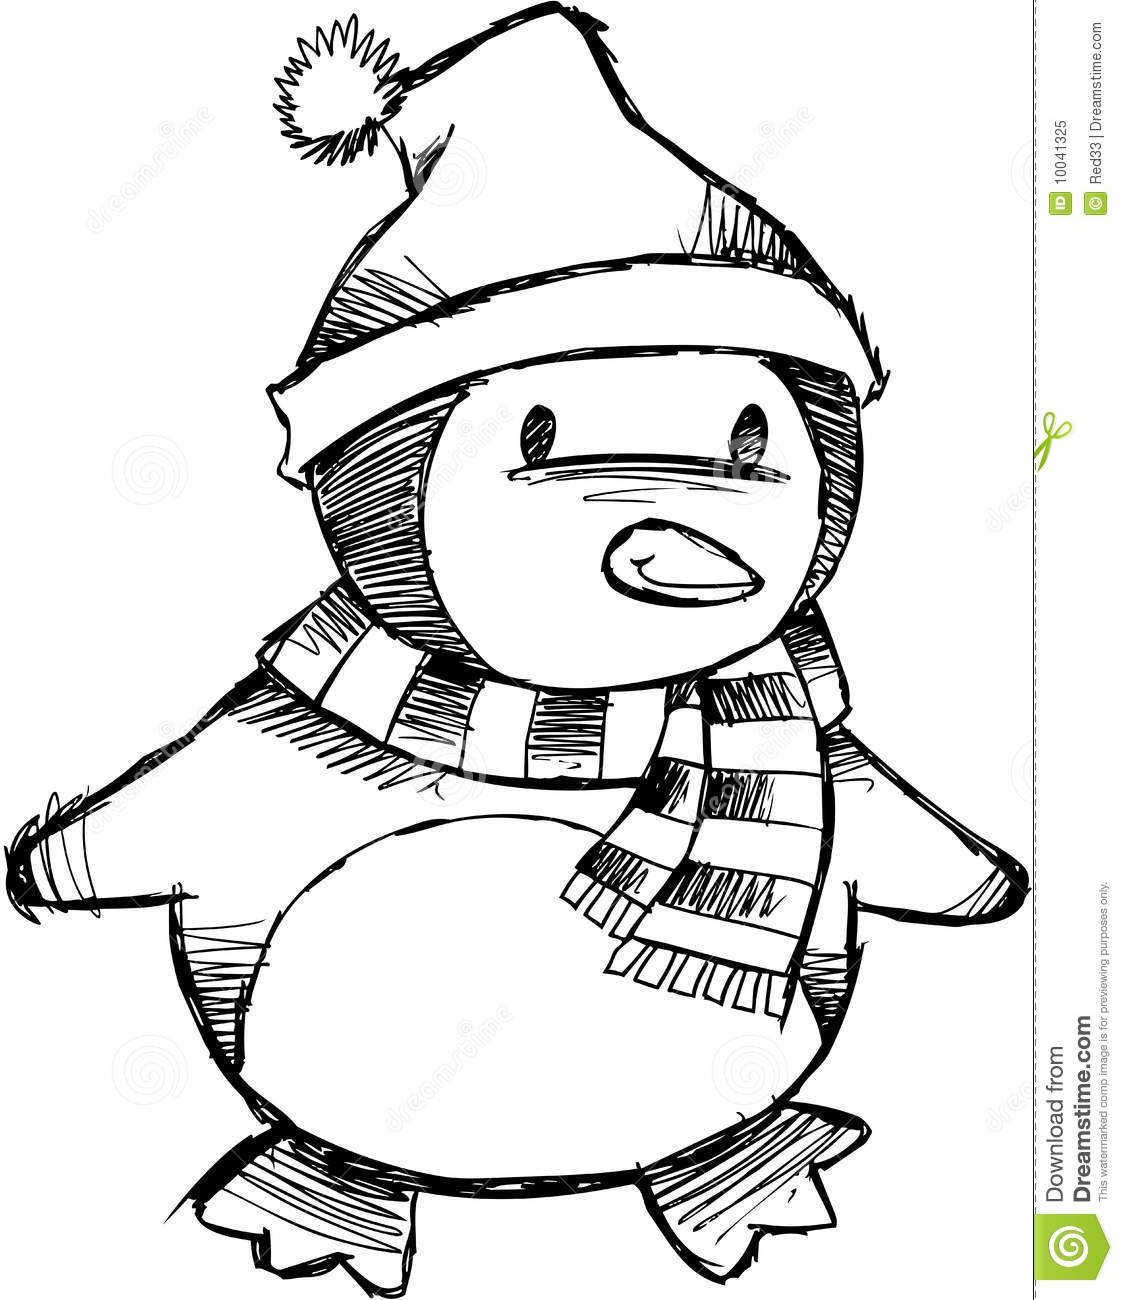 Christmas Hat Drawing Easy.Christmas Easy Drawing At Getdrawings Com Free For